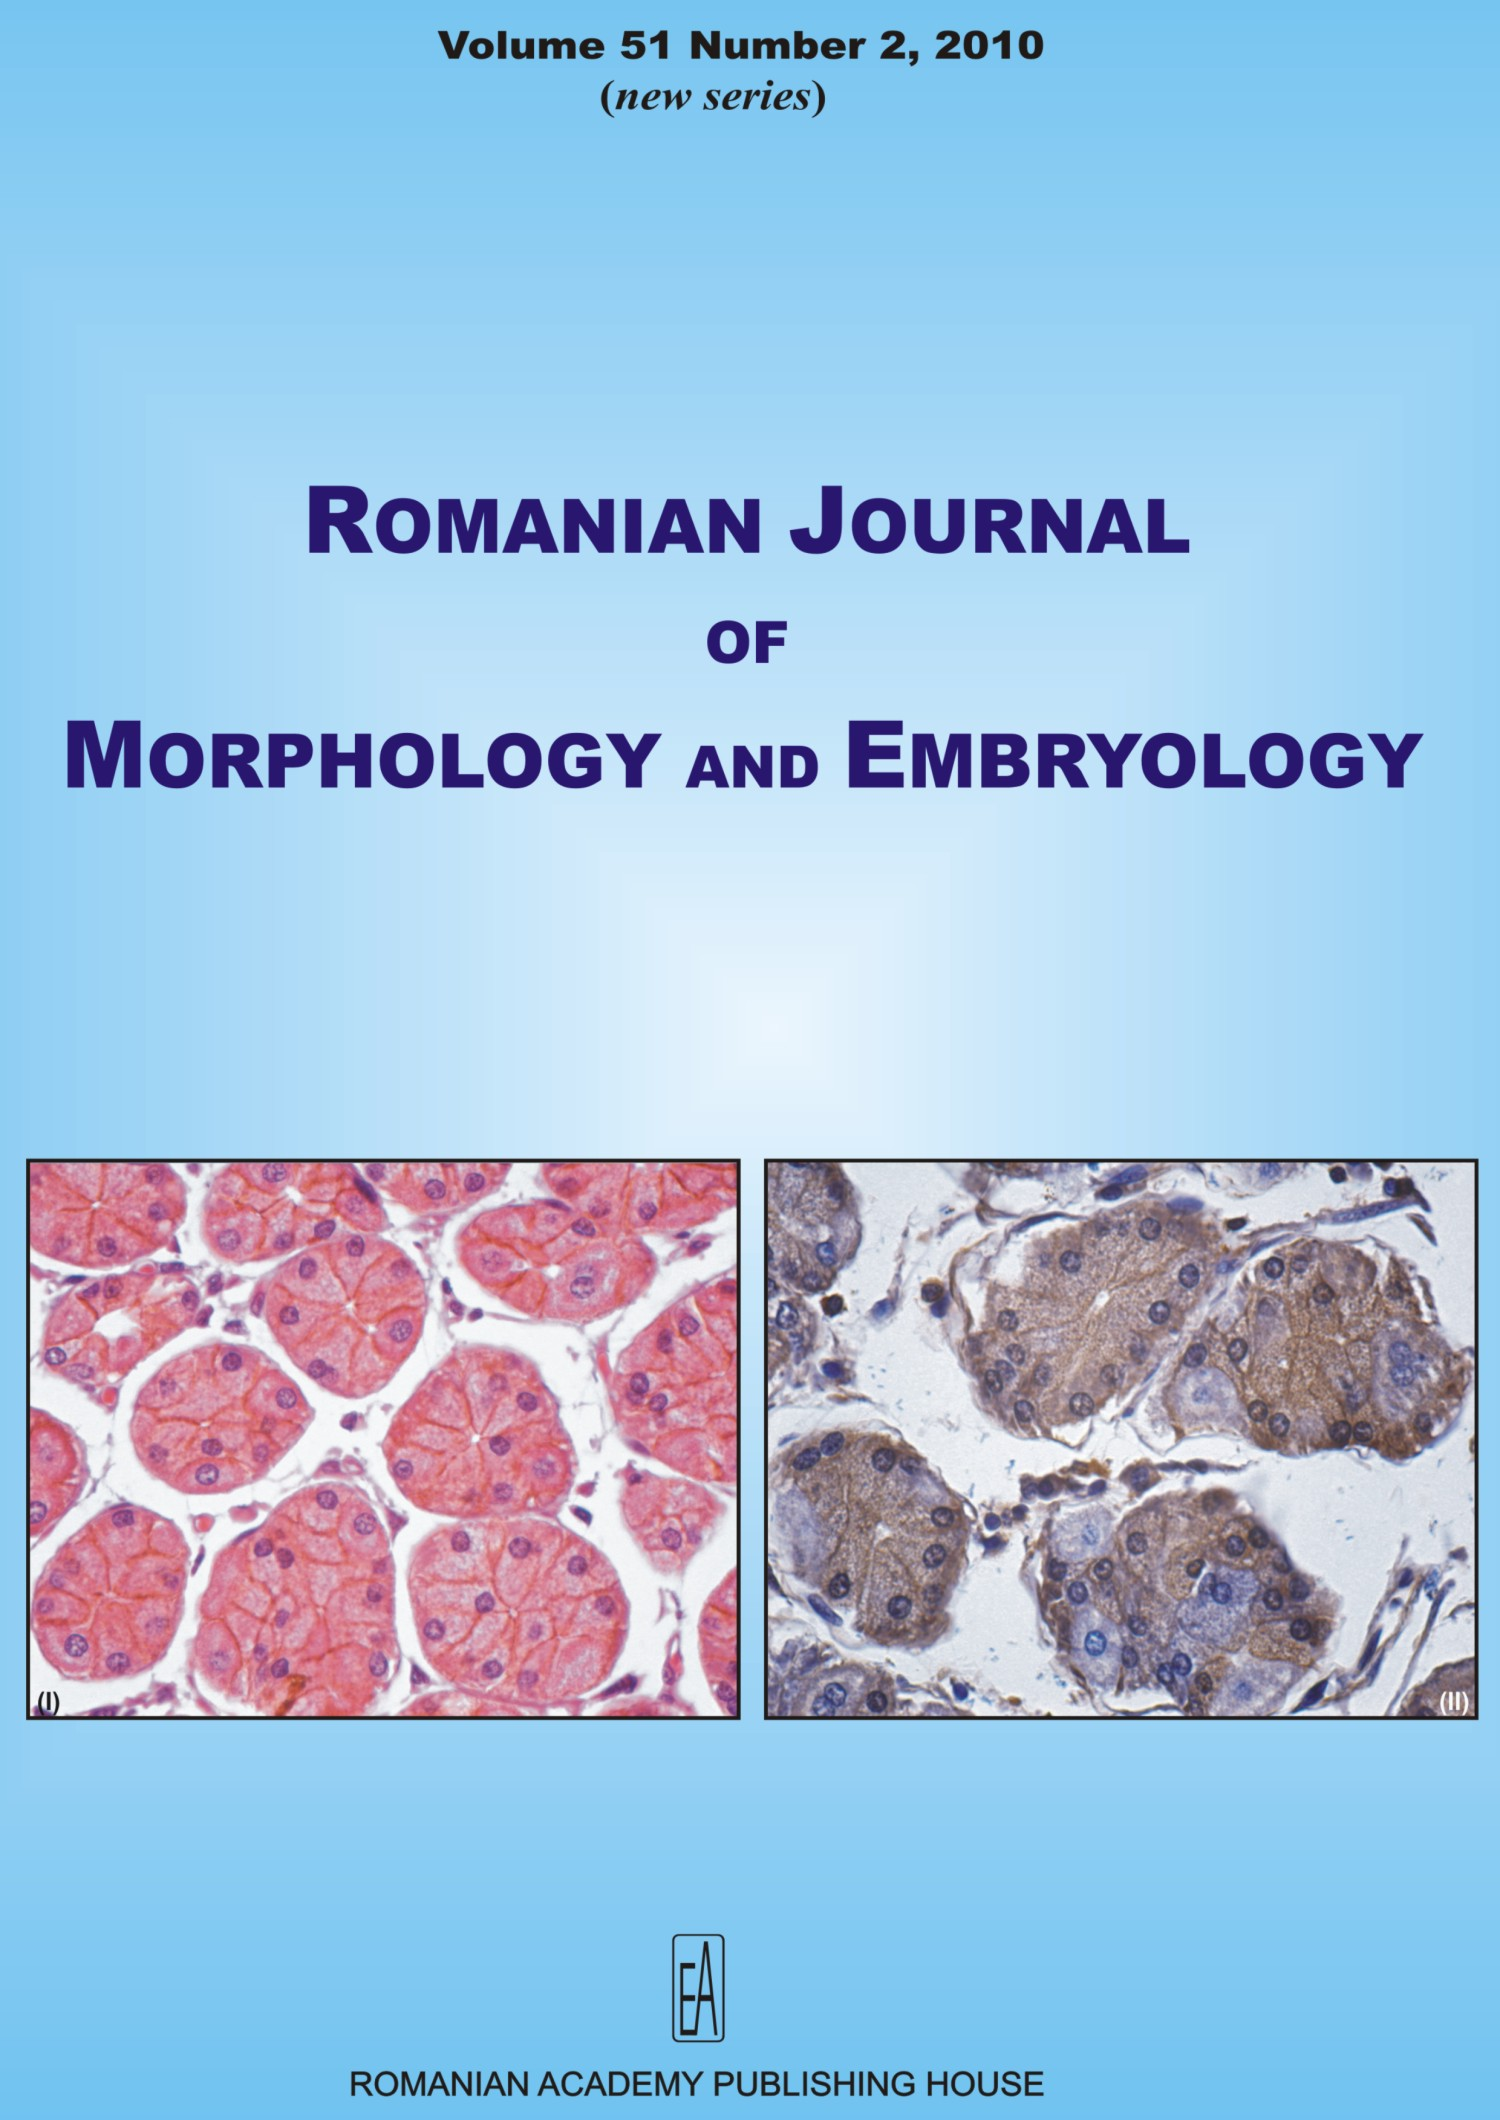 Romanian Journal of Morphology and Embryology, vol. 51 no. 2, 2010